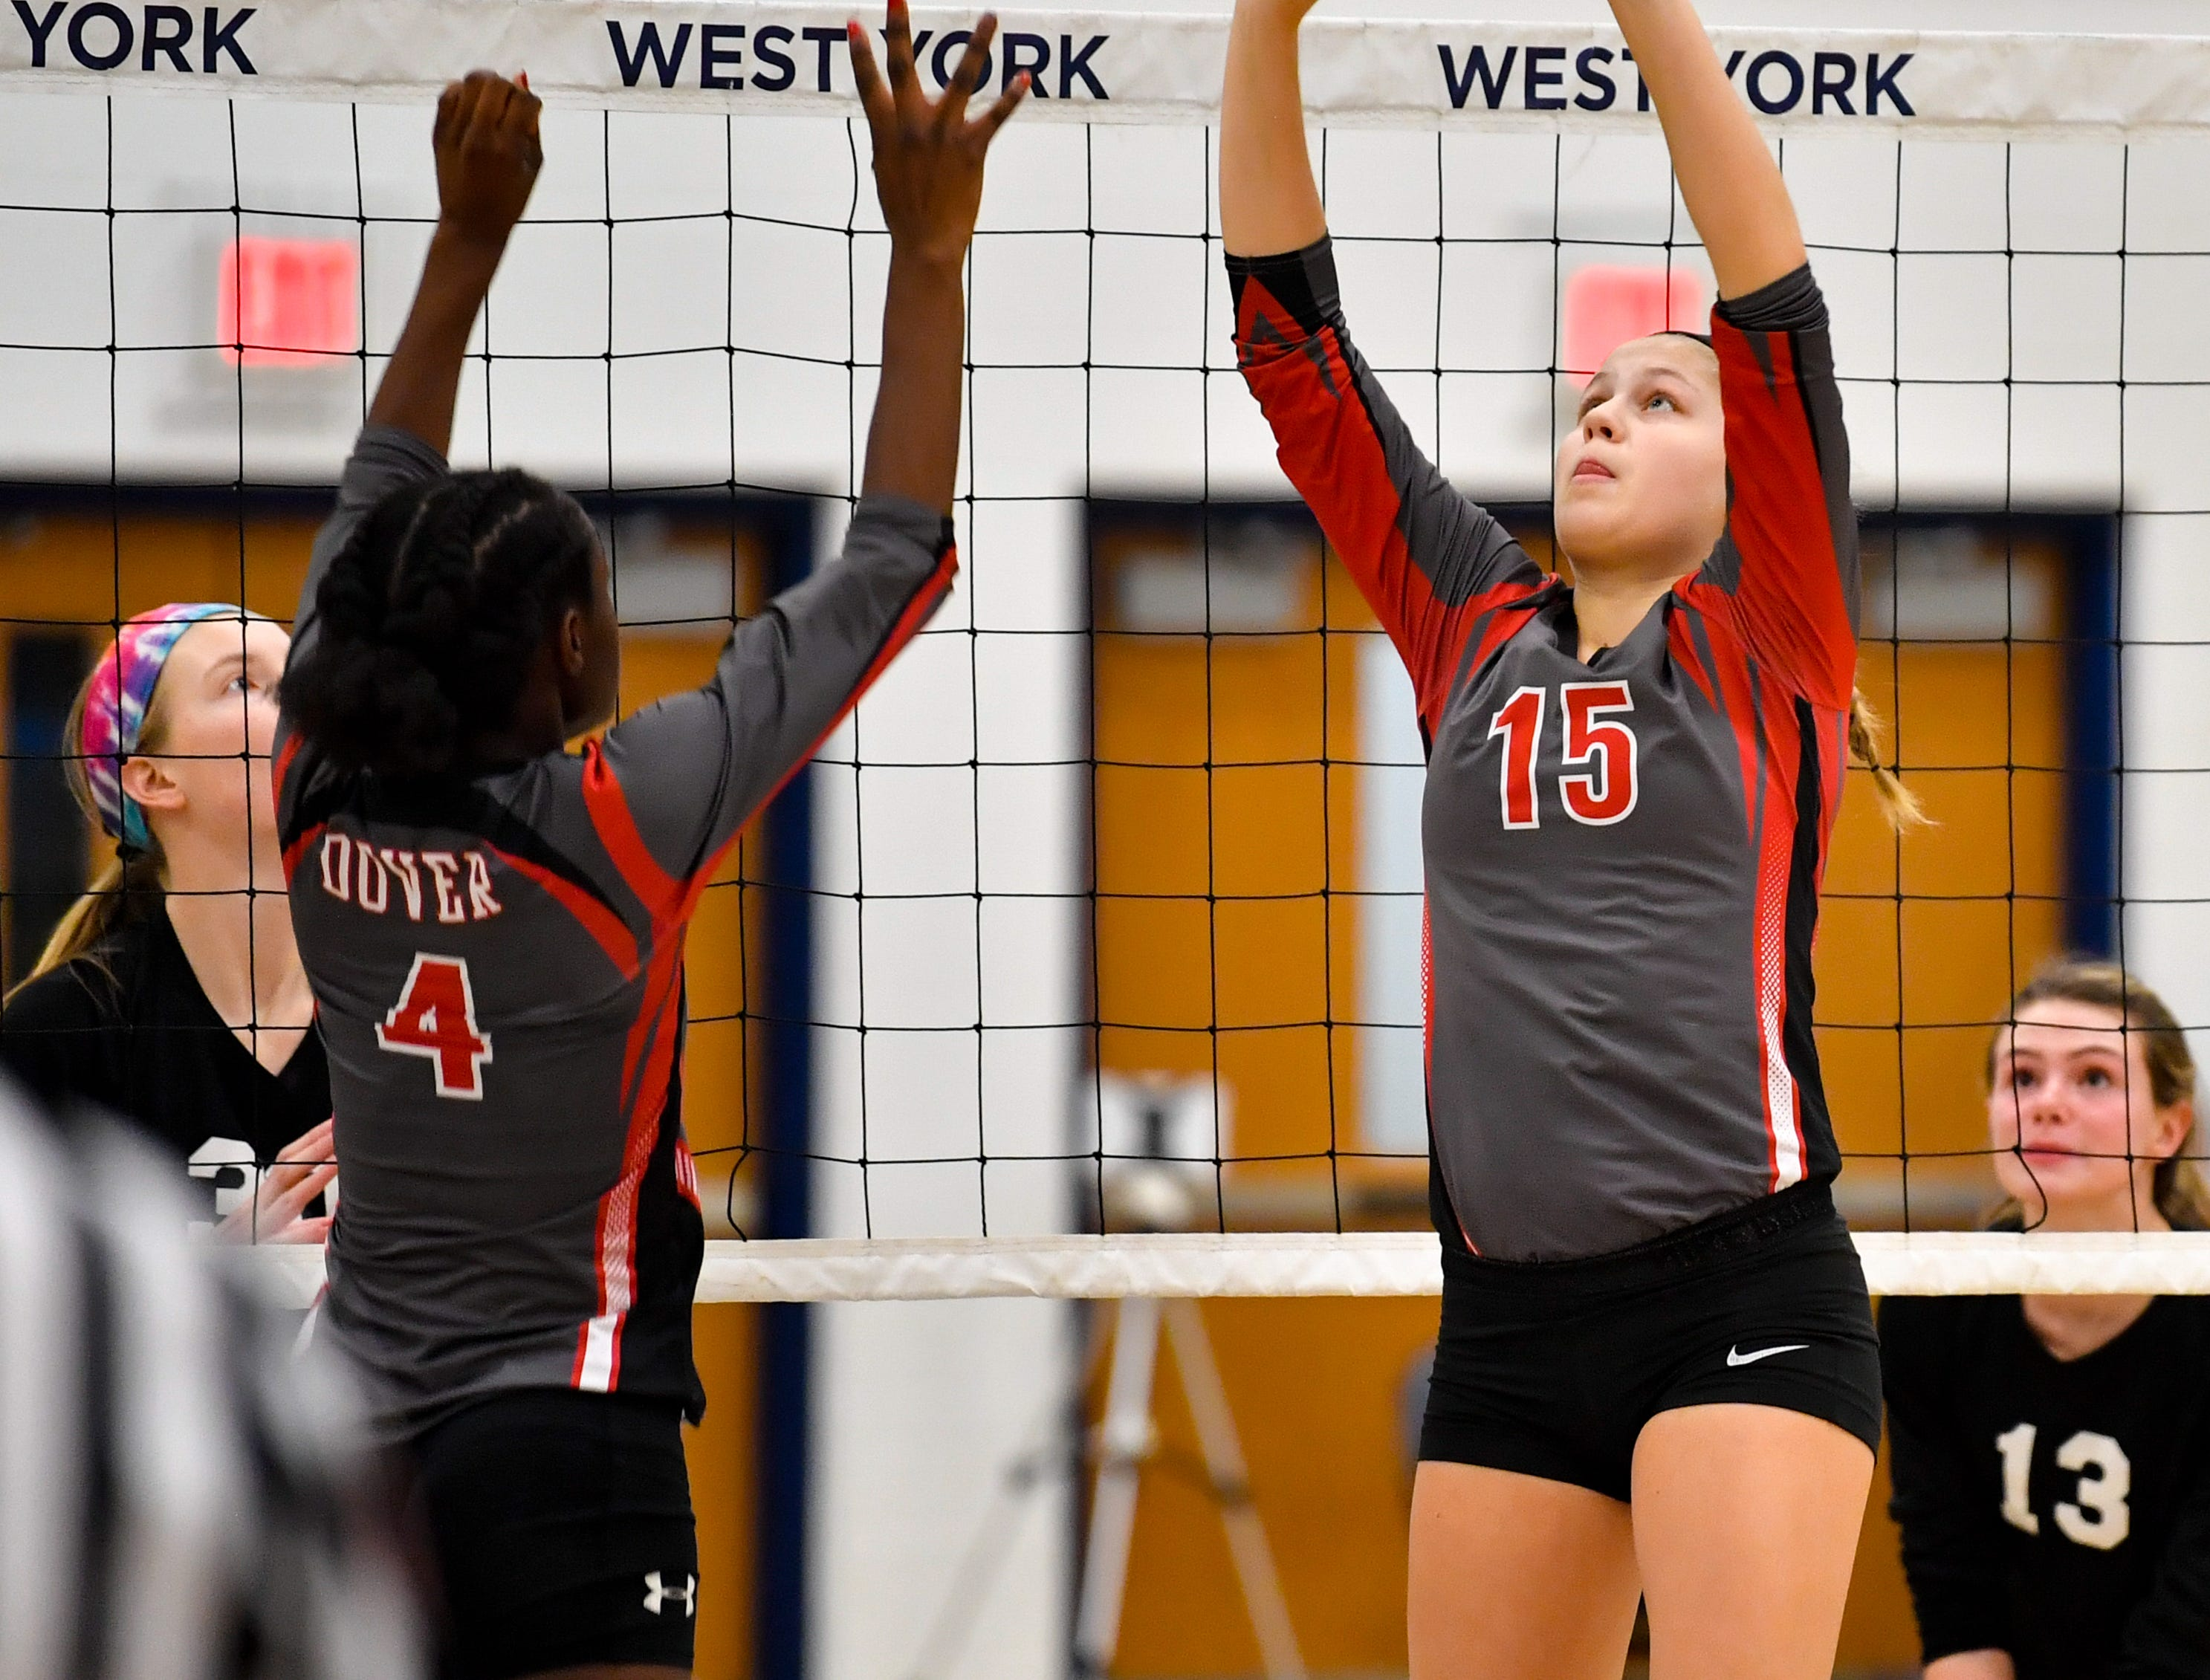 Abby Diehl (15) of Dover sets Frankie White (4) during the District 3 Class 3A girls' volleyball quarterfinals between Dover and York Suburban at West York High School, October 30, 2018. The Eagles defeated the Trojans 3-2.